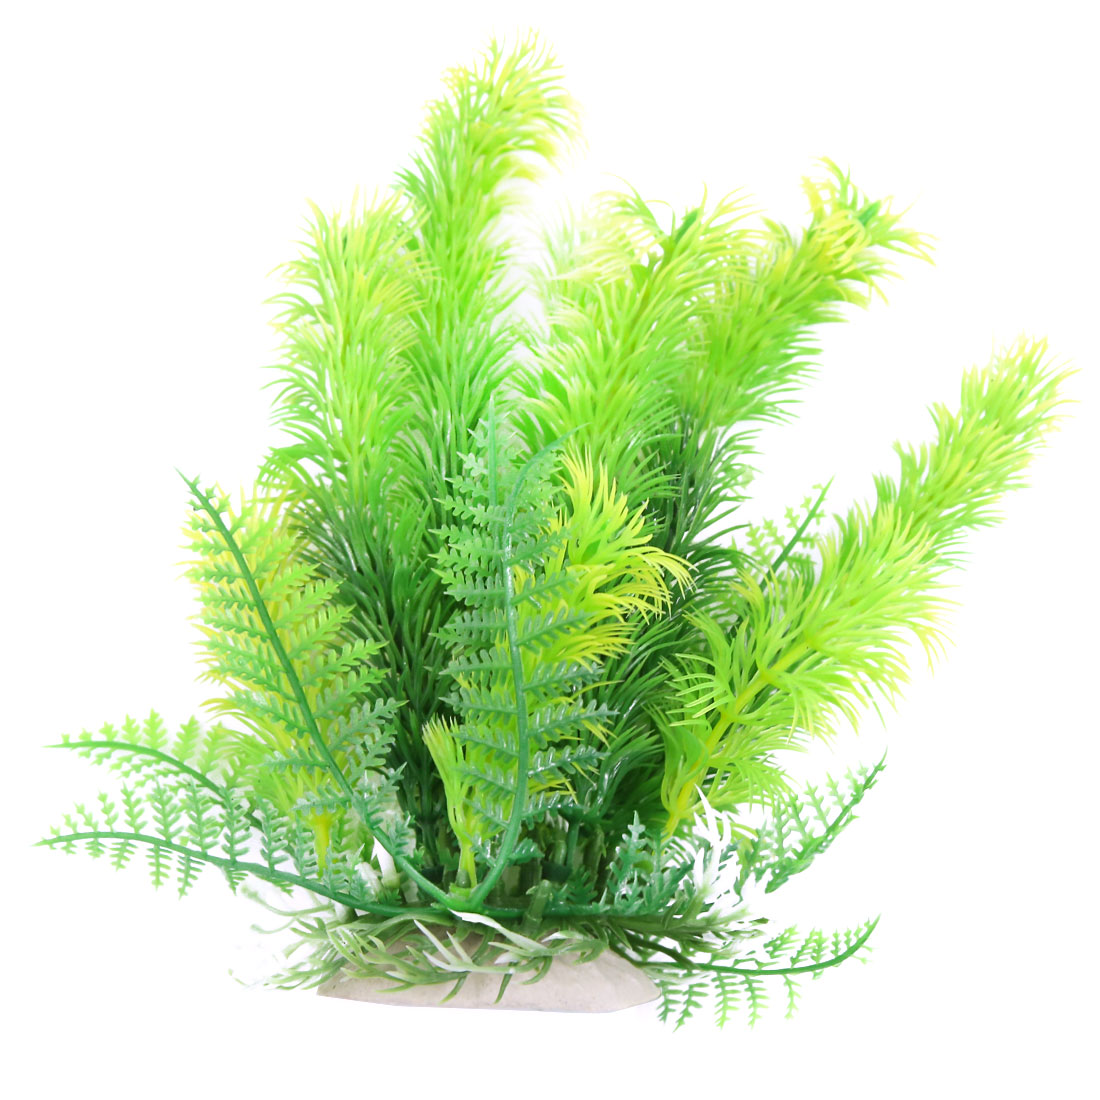 Green 18cm High Aqua Landscape Fish Tank Plastic Plant For Betta